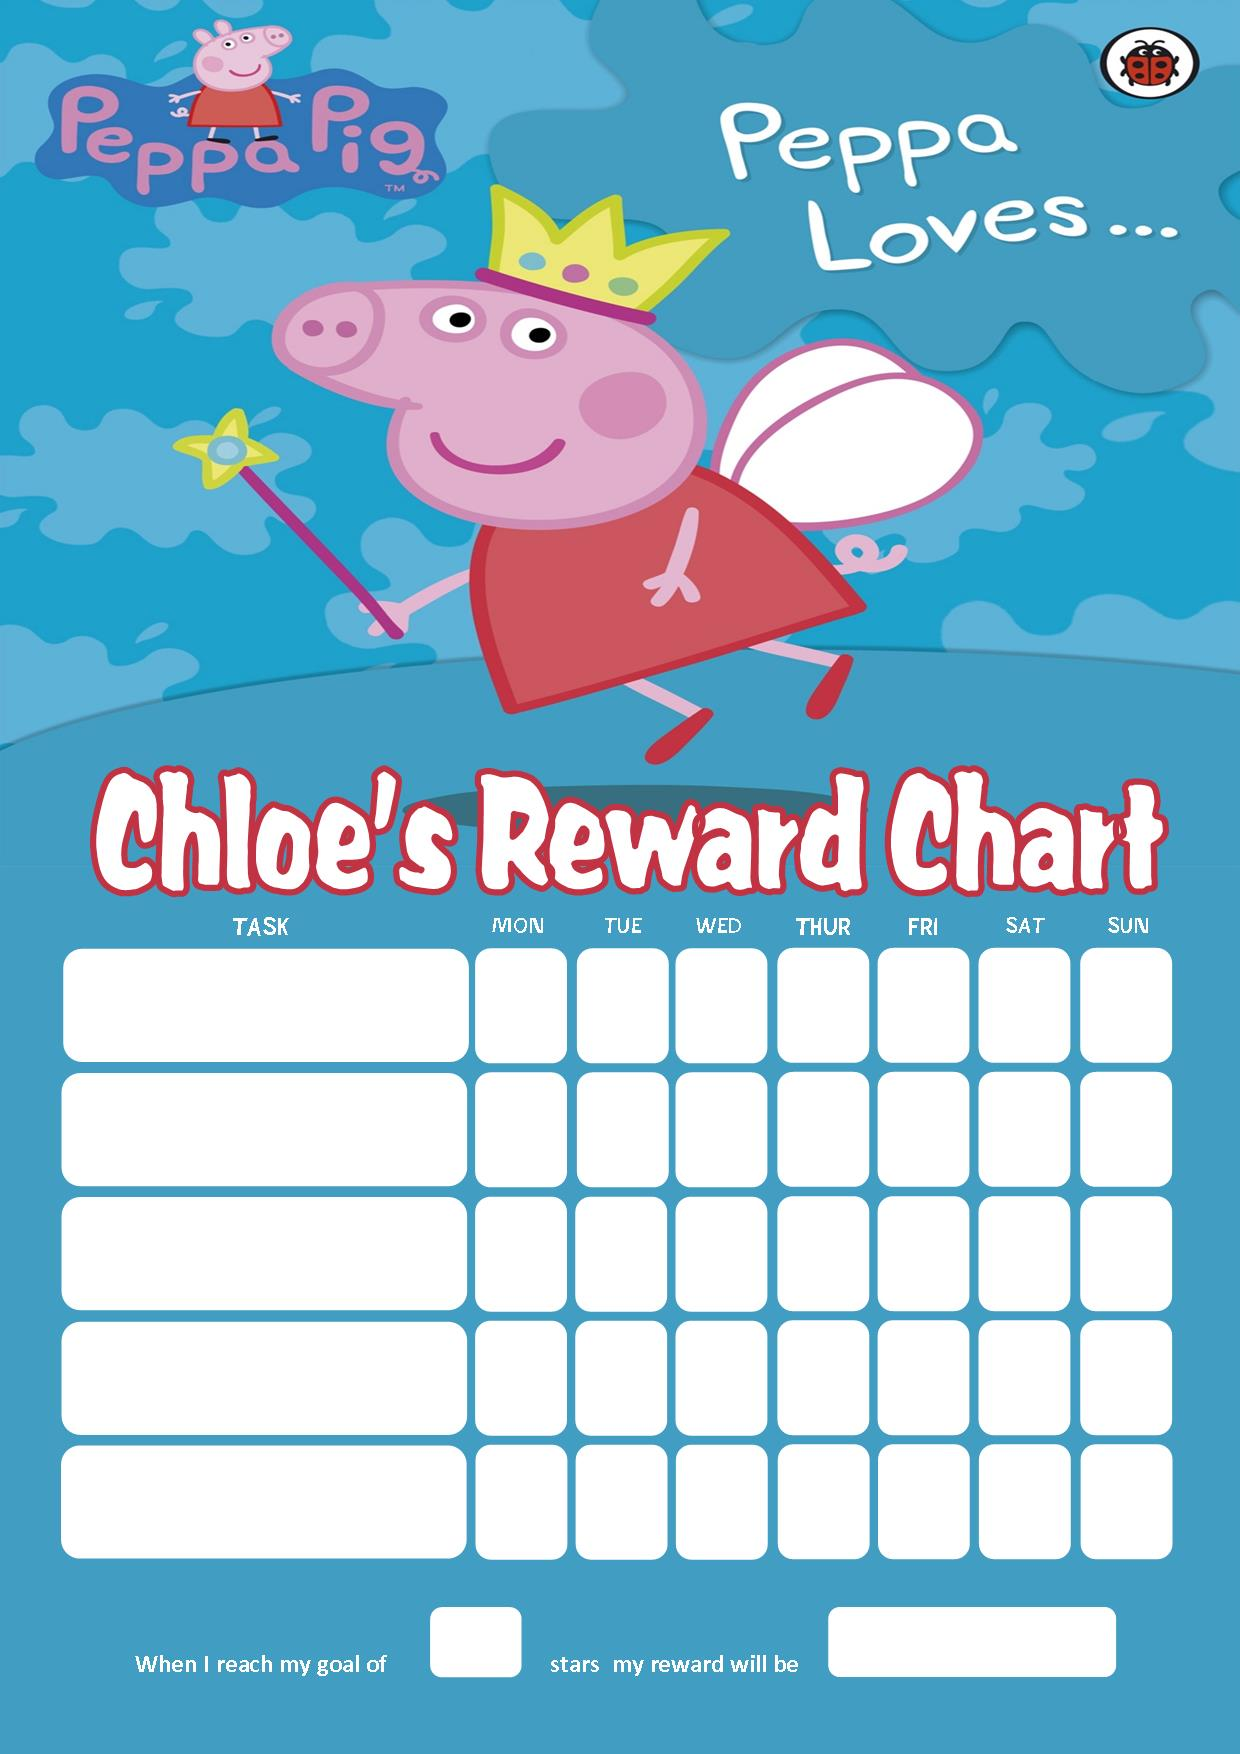 Personalised Peppa Pig Reward Chart (adding photo option available): www.greetingcards4kids.com/personalised-peppa-pig-reward-chart...